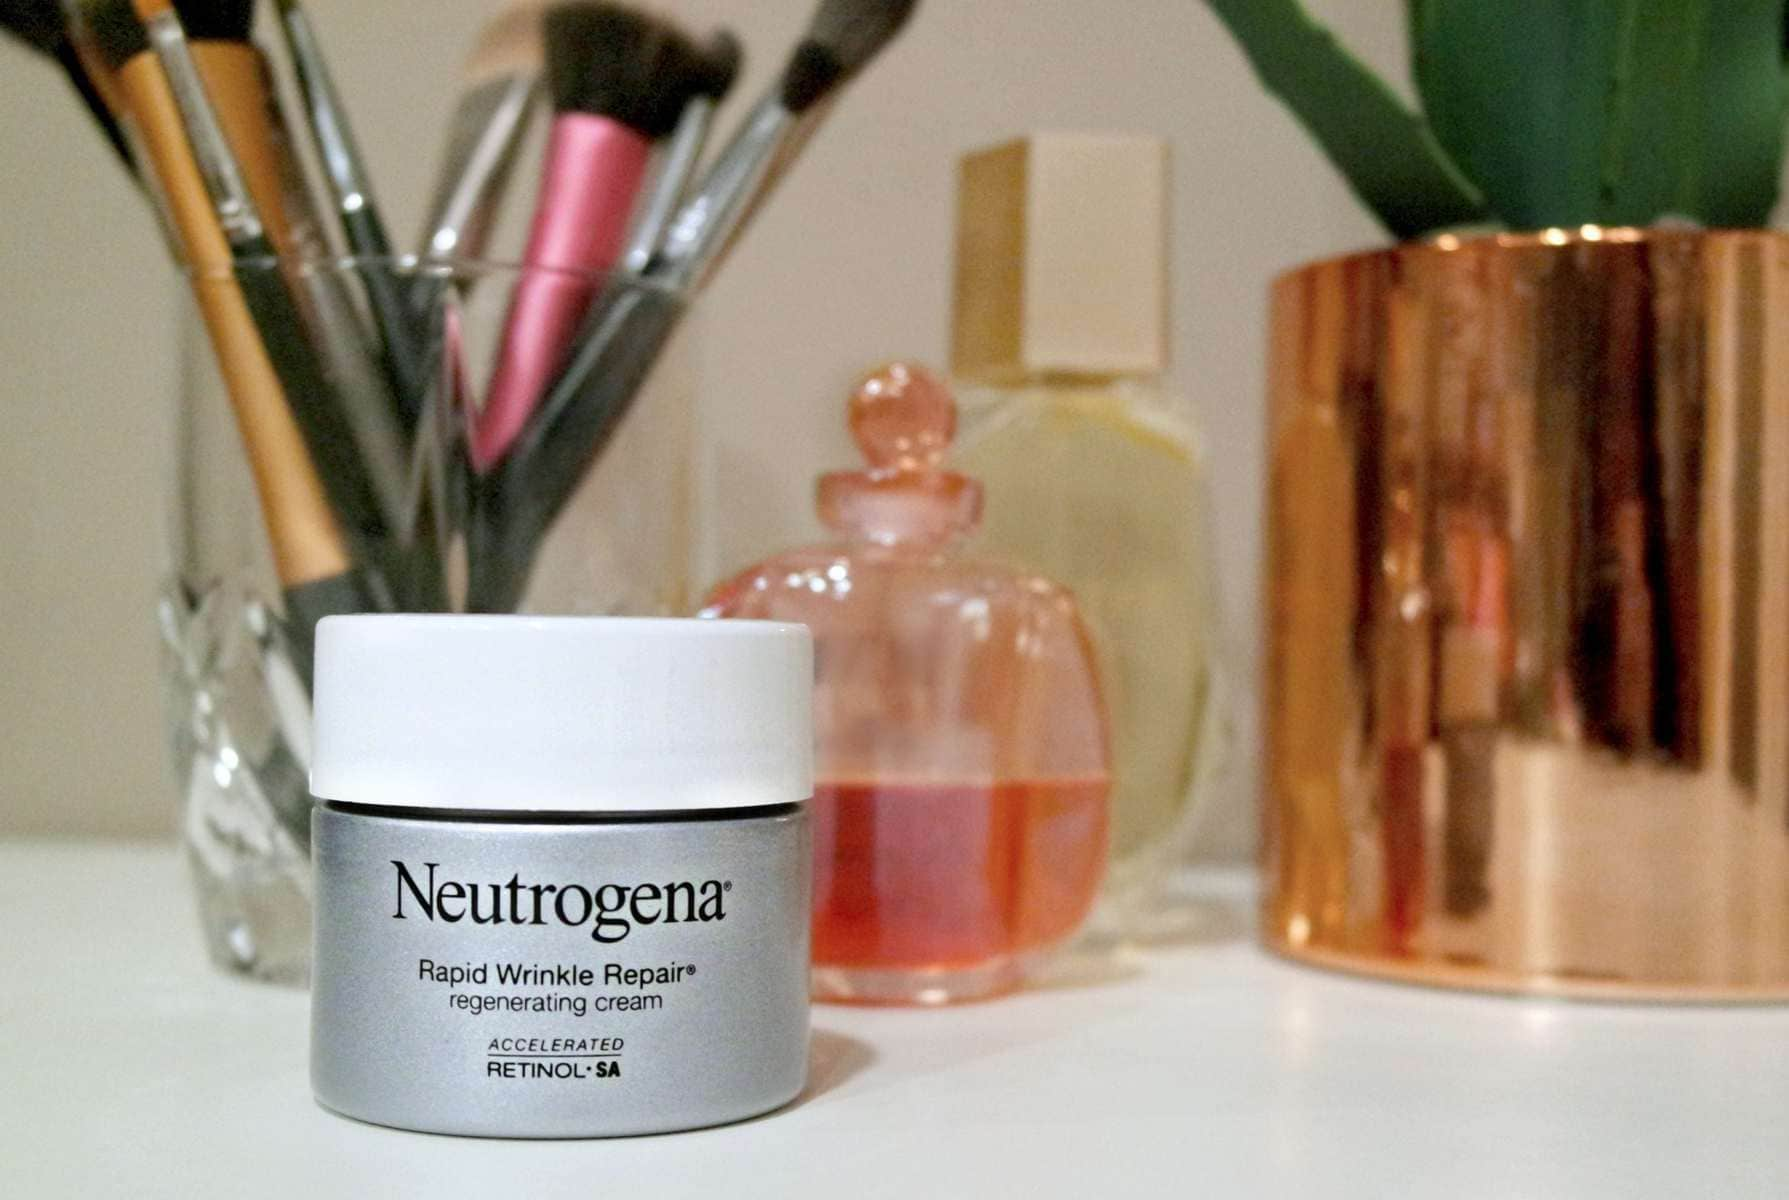 Review: Neutrogena Rapid Wrinkle Repair Regenerating Cream [Sponsored] - Wardrobe Oxygen